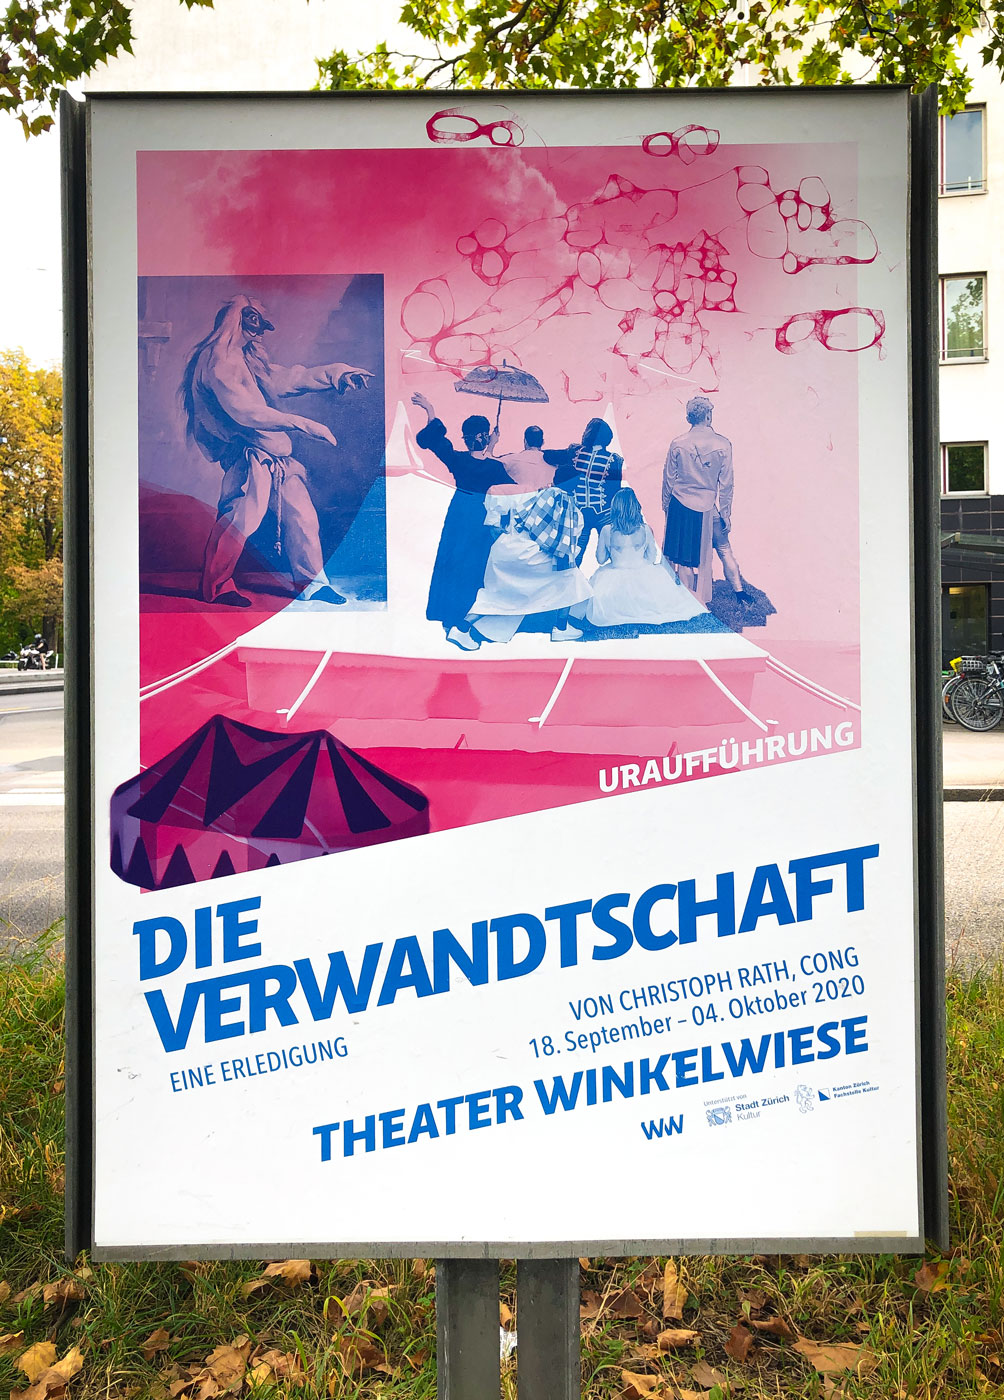 Theater Winkelwiese 2020